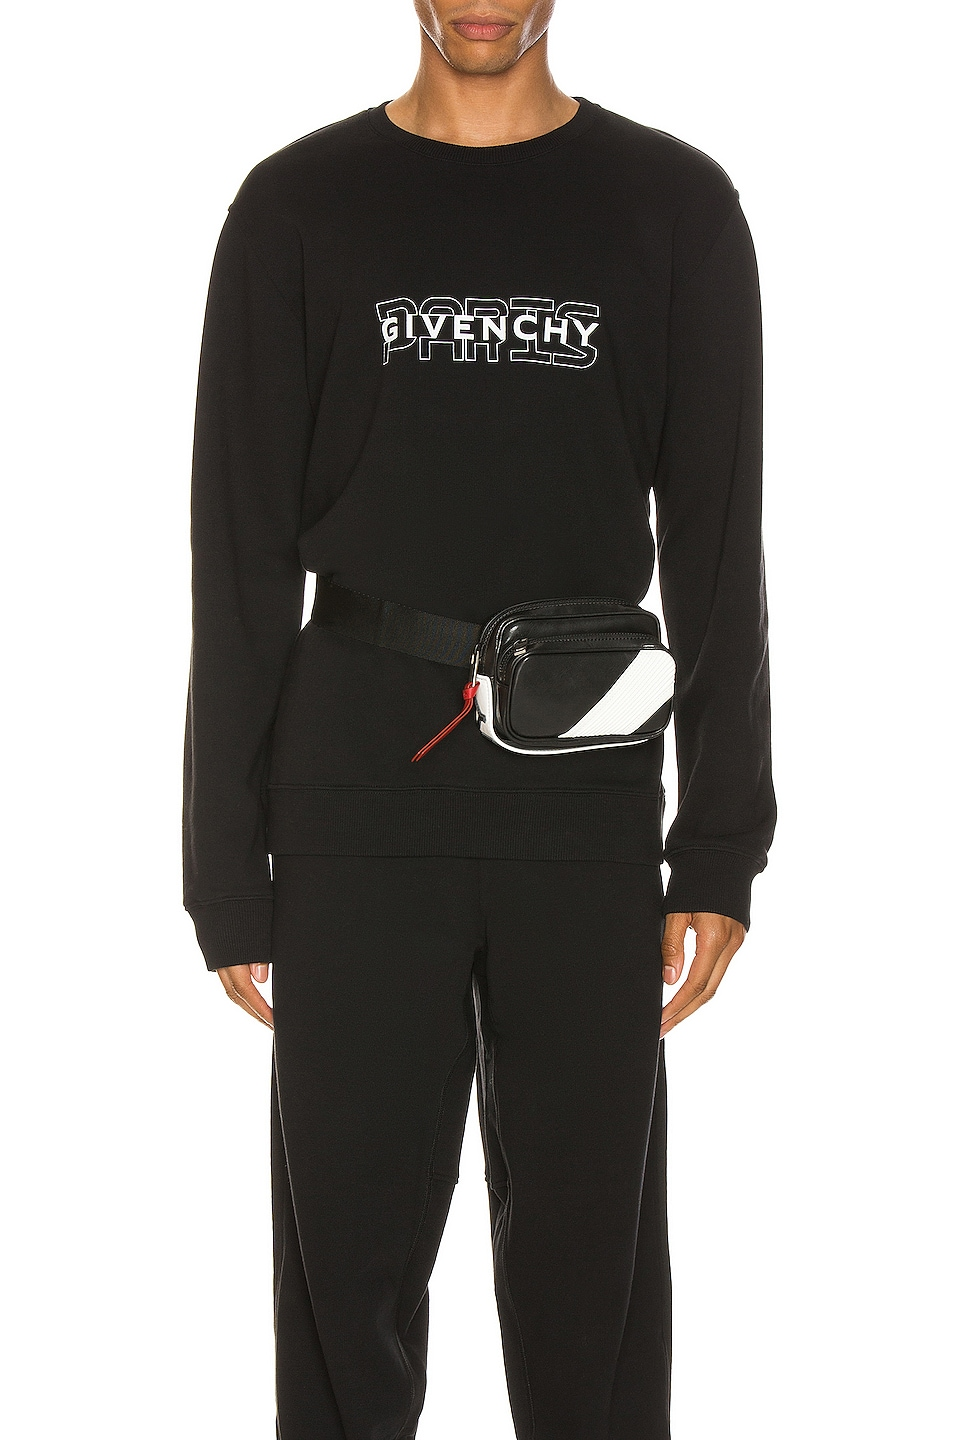 Image 1 of Givenchy Sweatshirt in Black